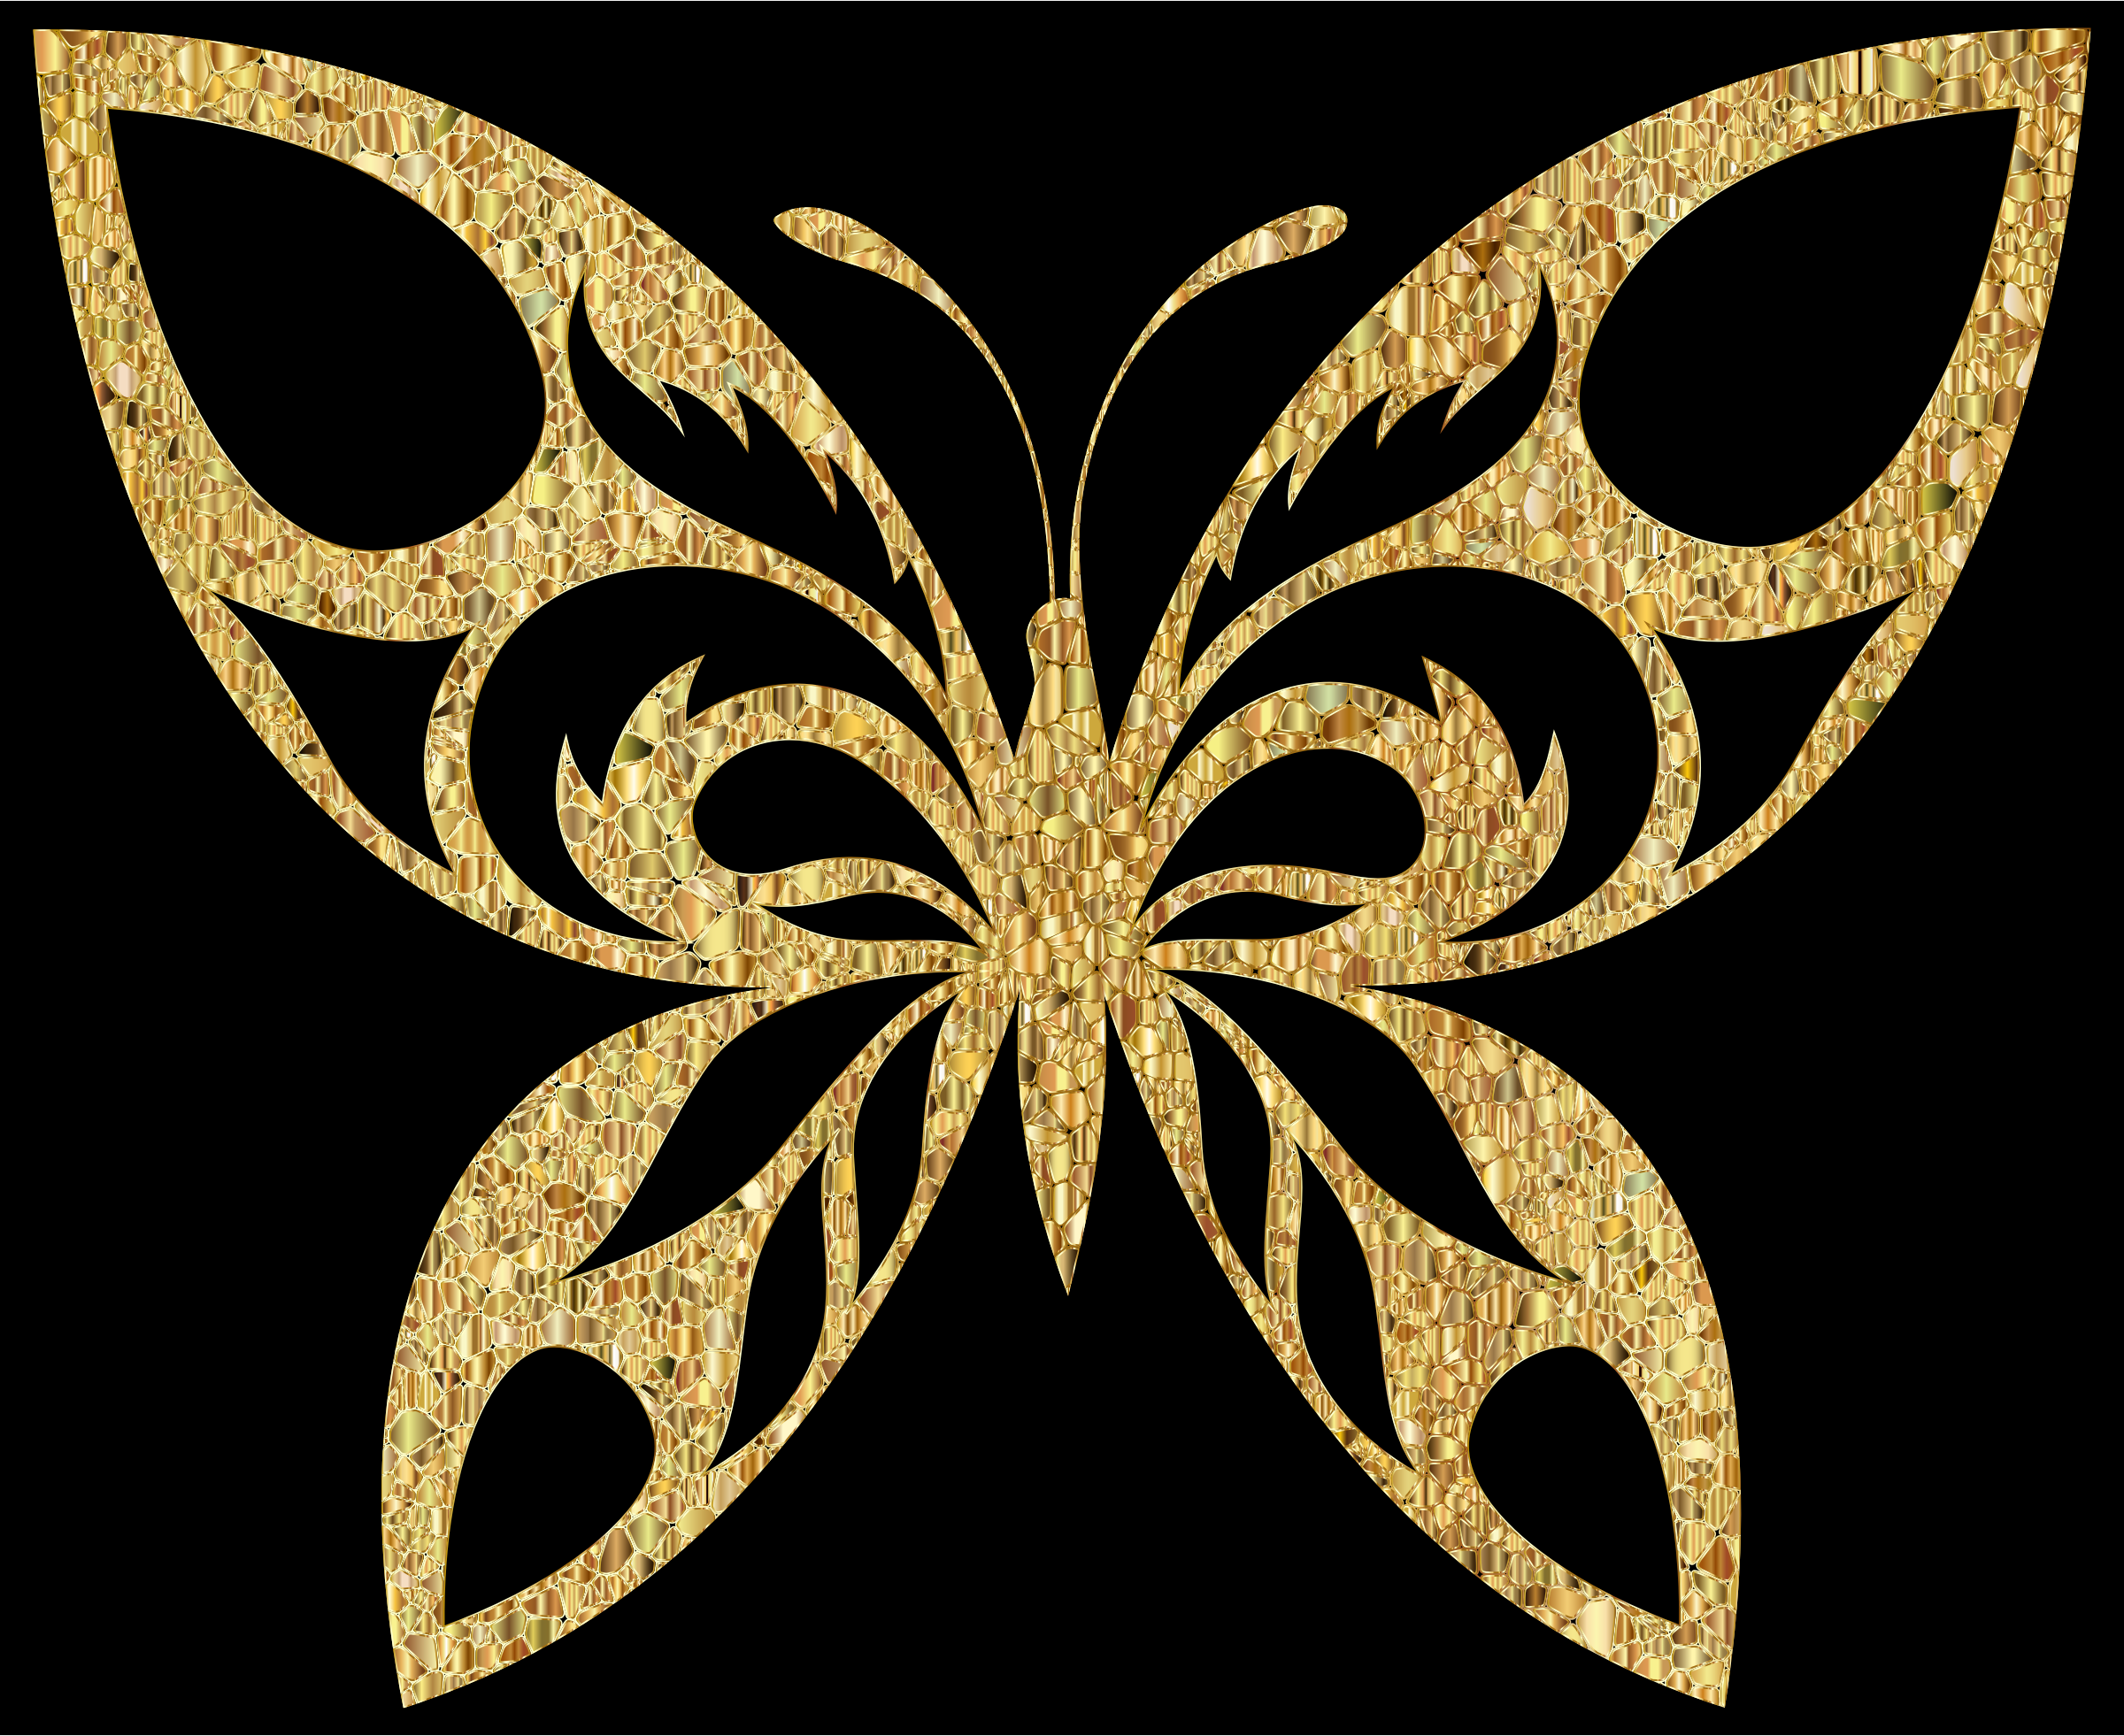 Clipart - Gold Tiled Tribal Butterfly Silhouette Variation 2